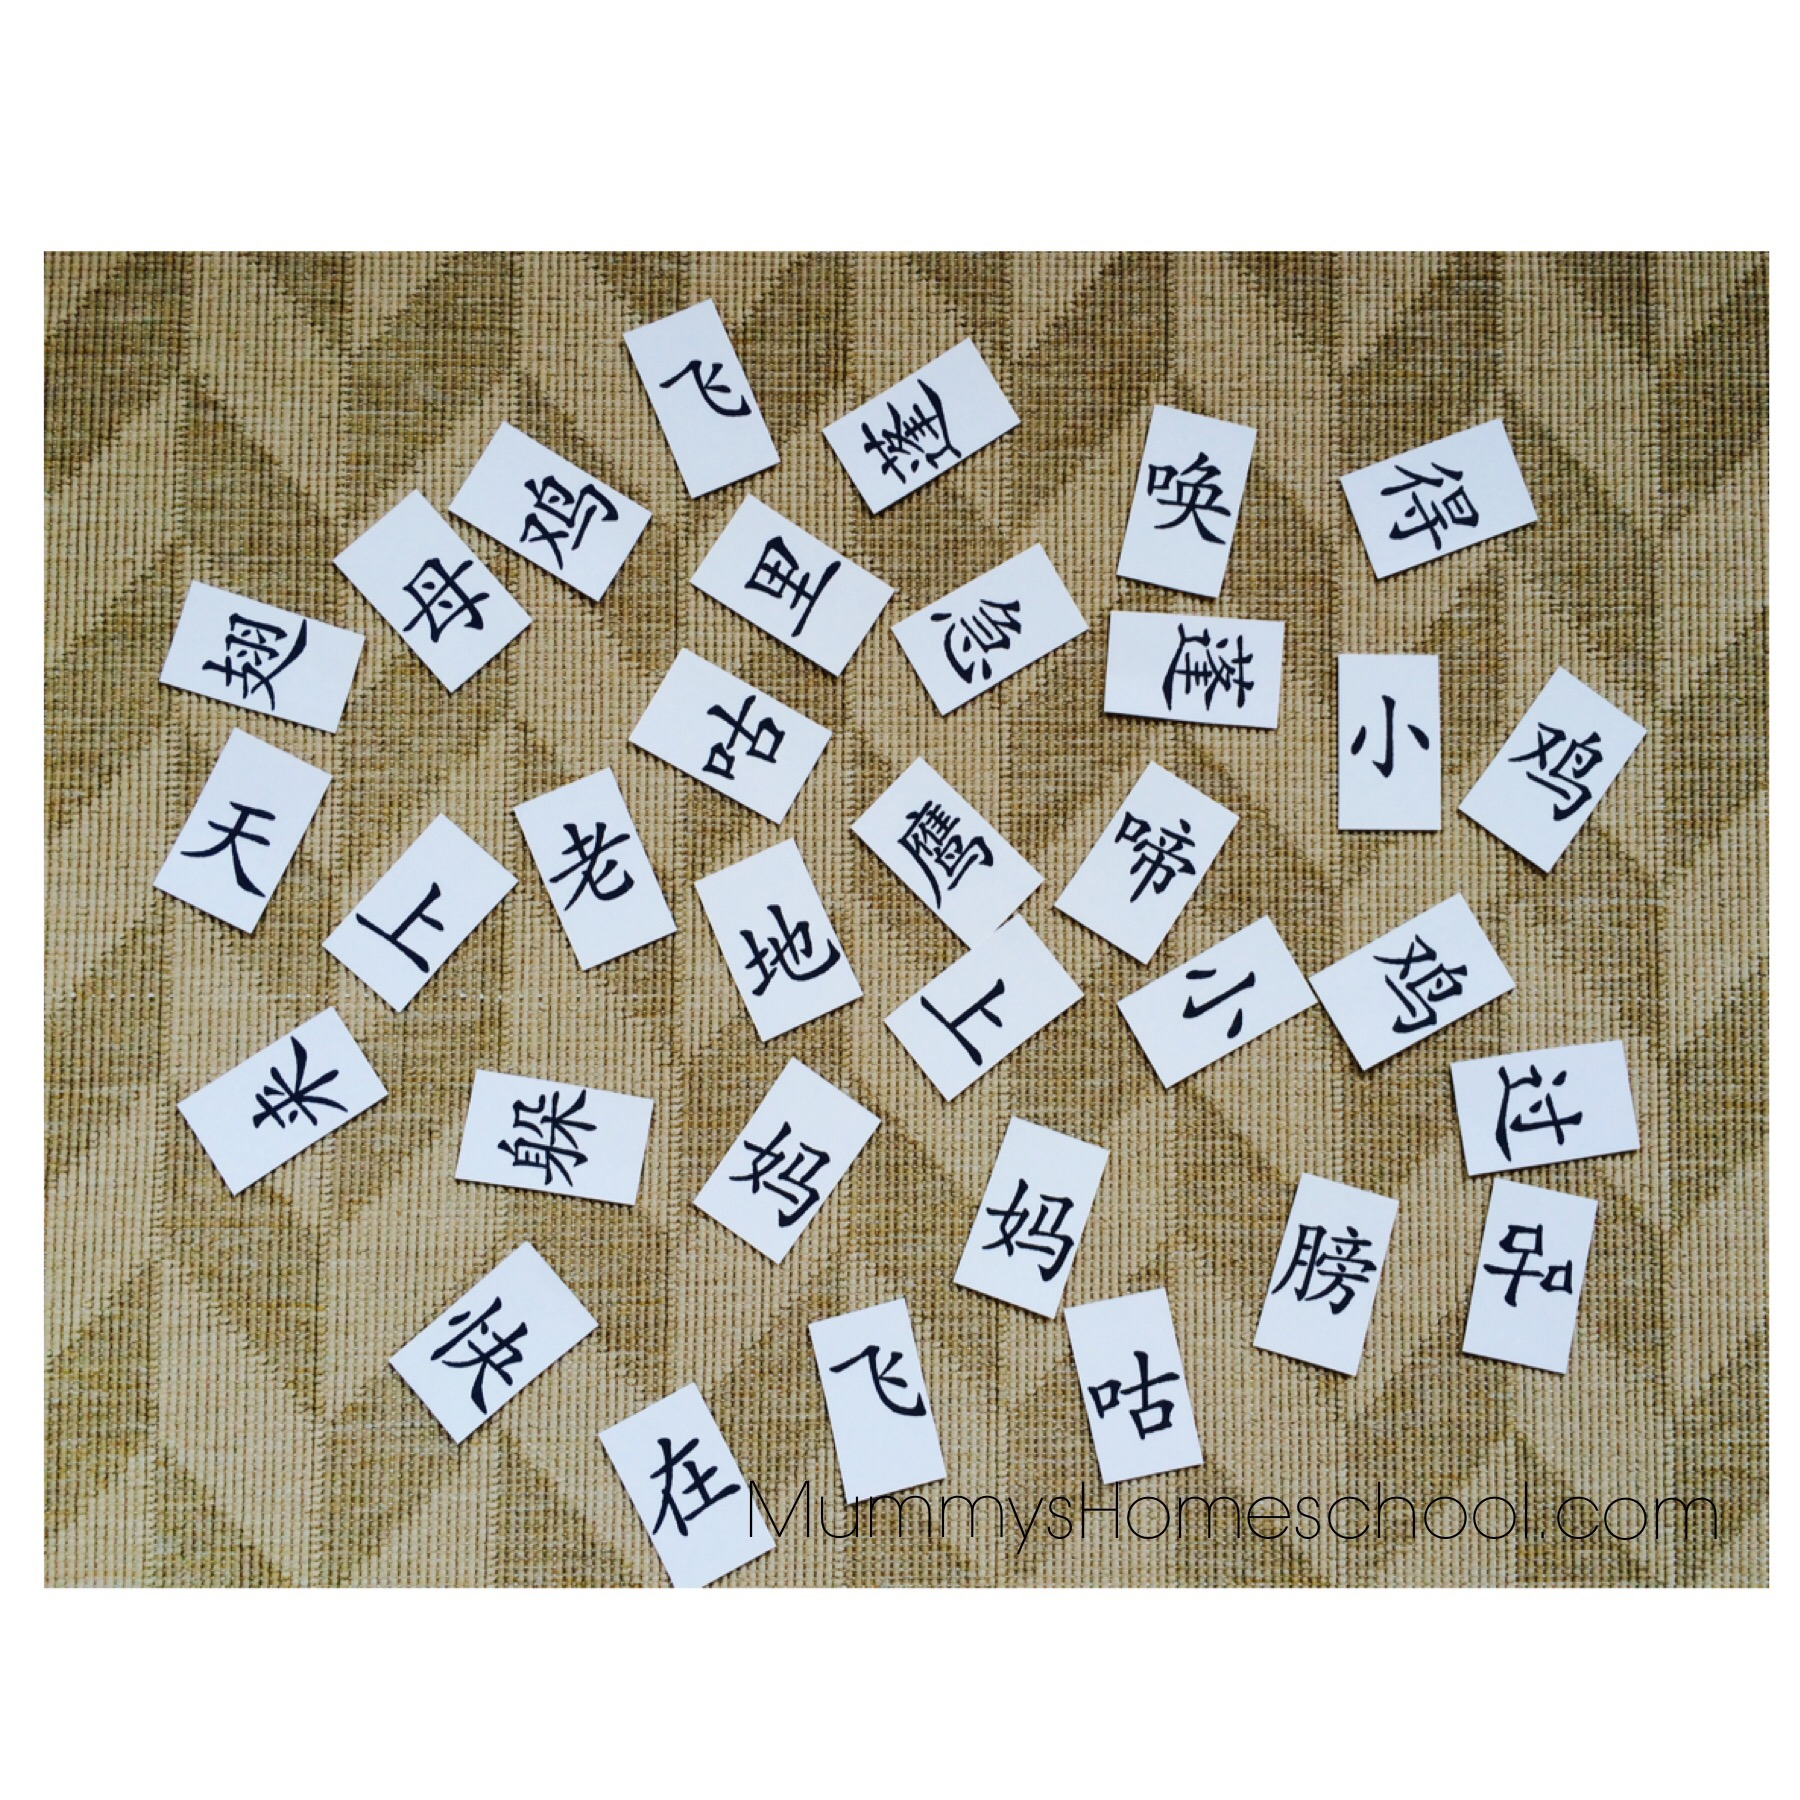 Chinese reading activities word cards search game